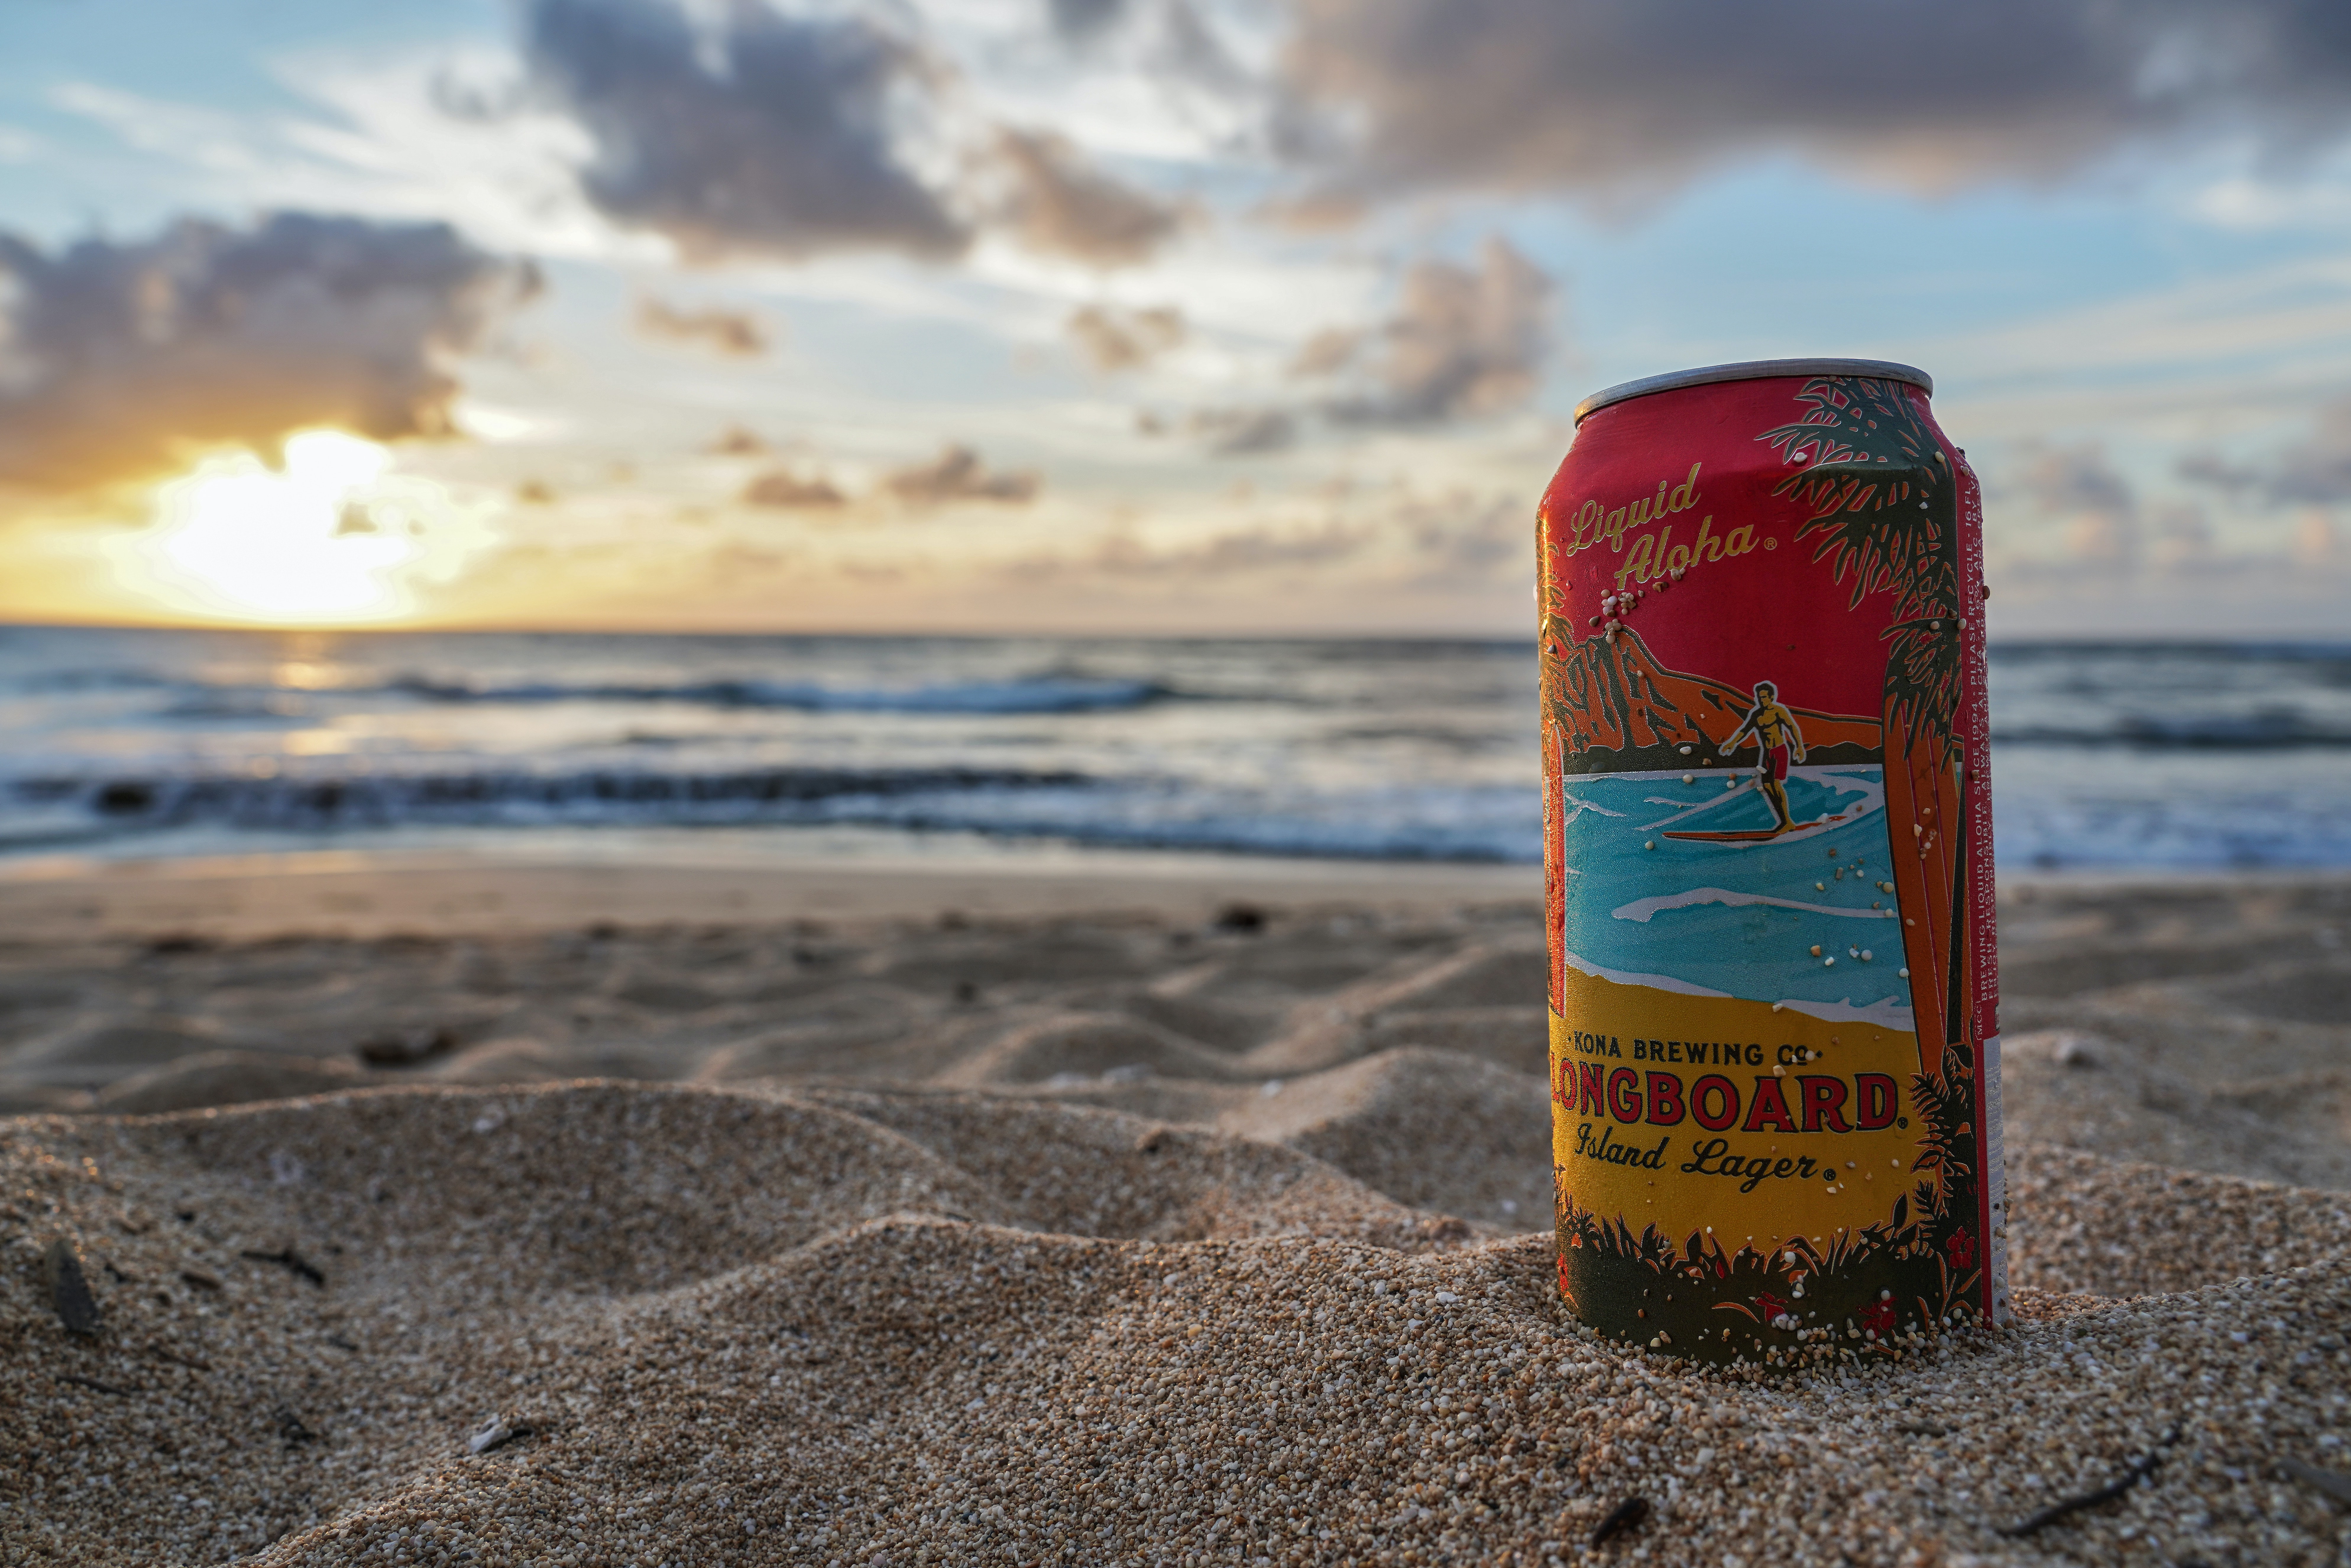 Longboard beverage can on sand by the beach during day